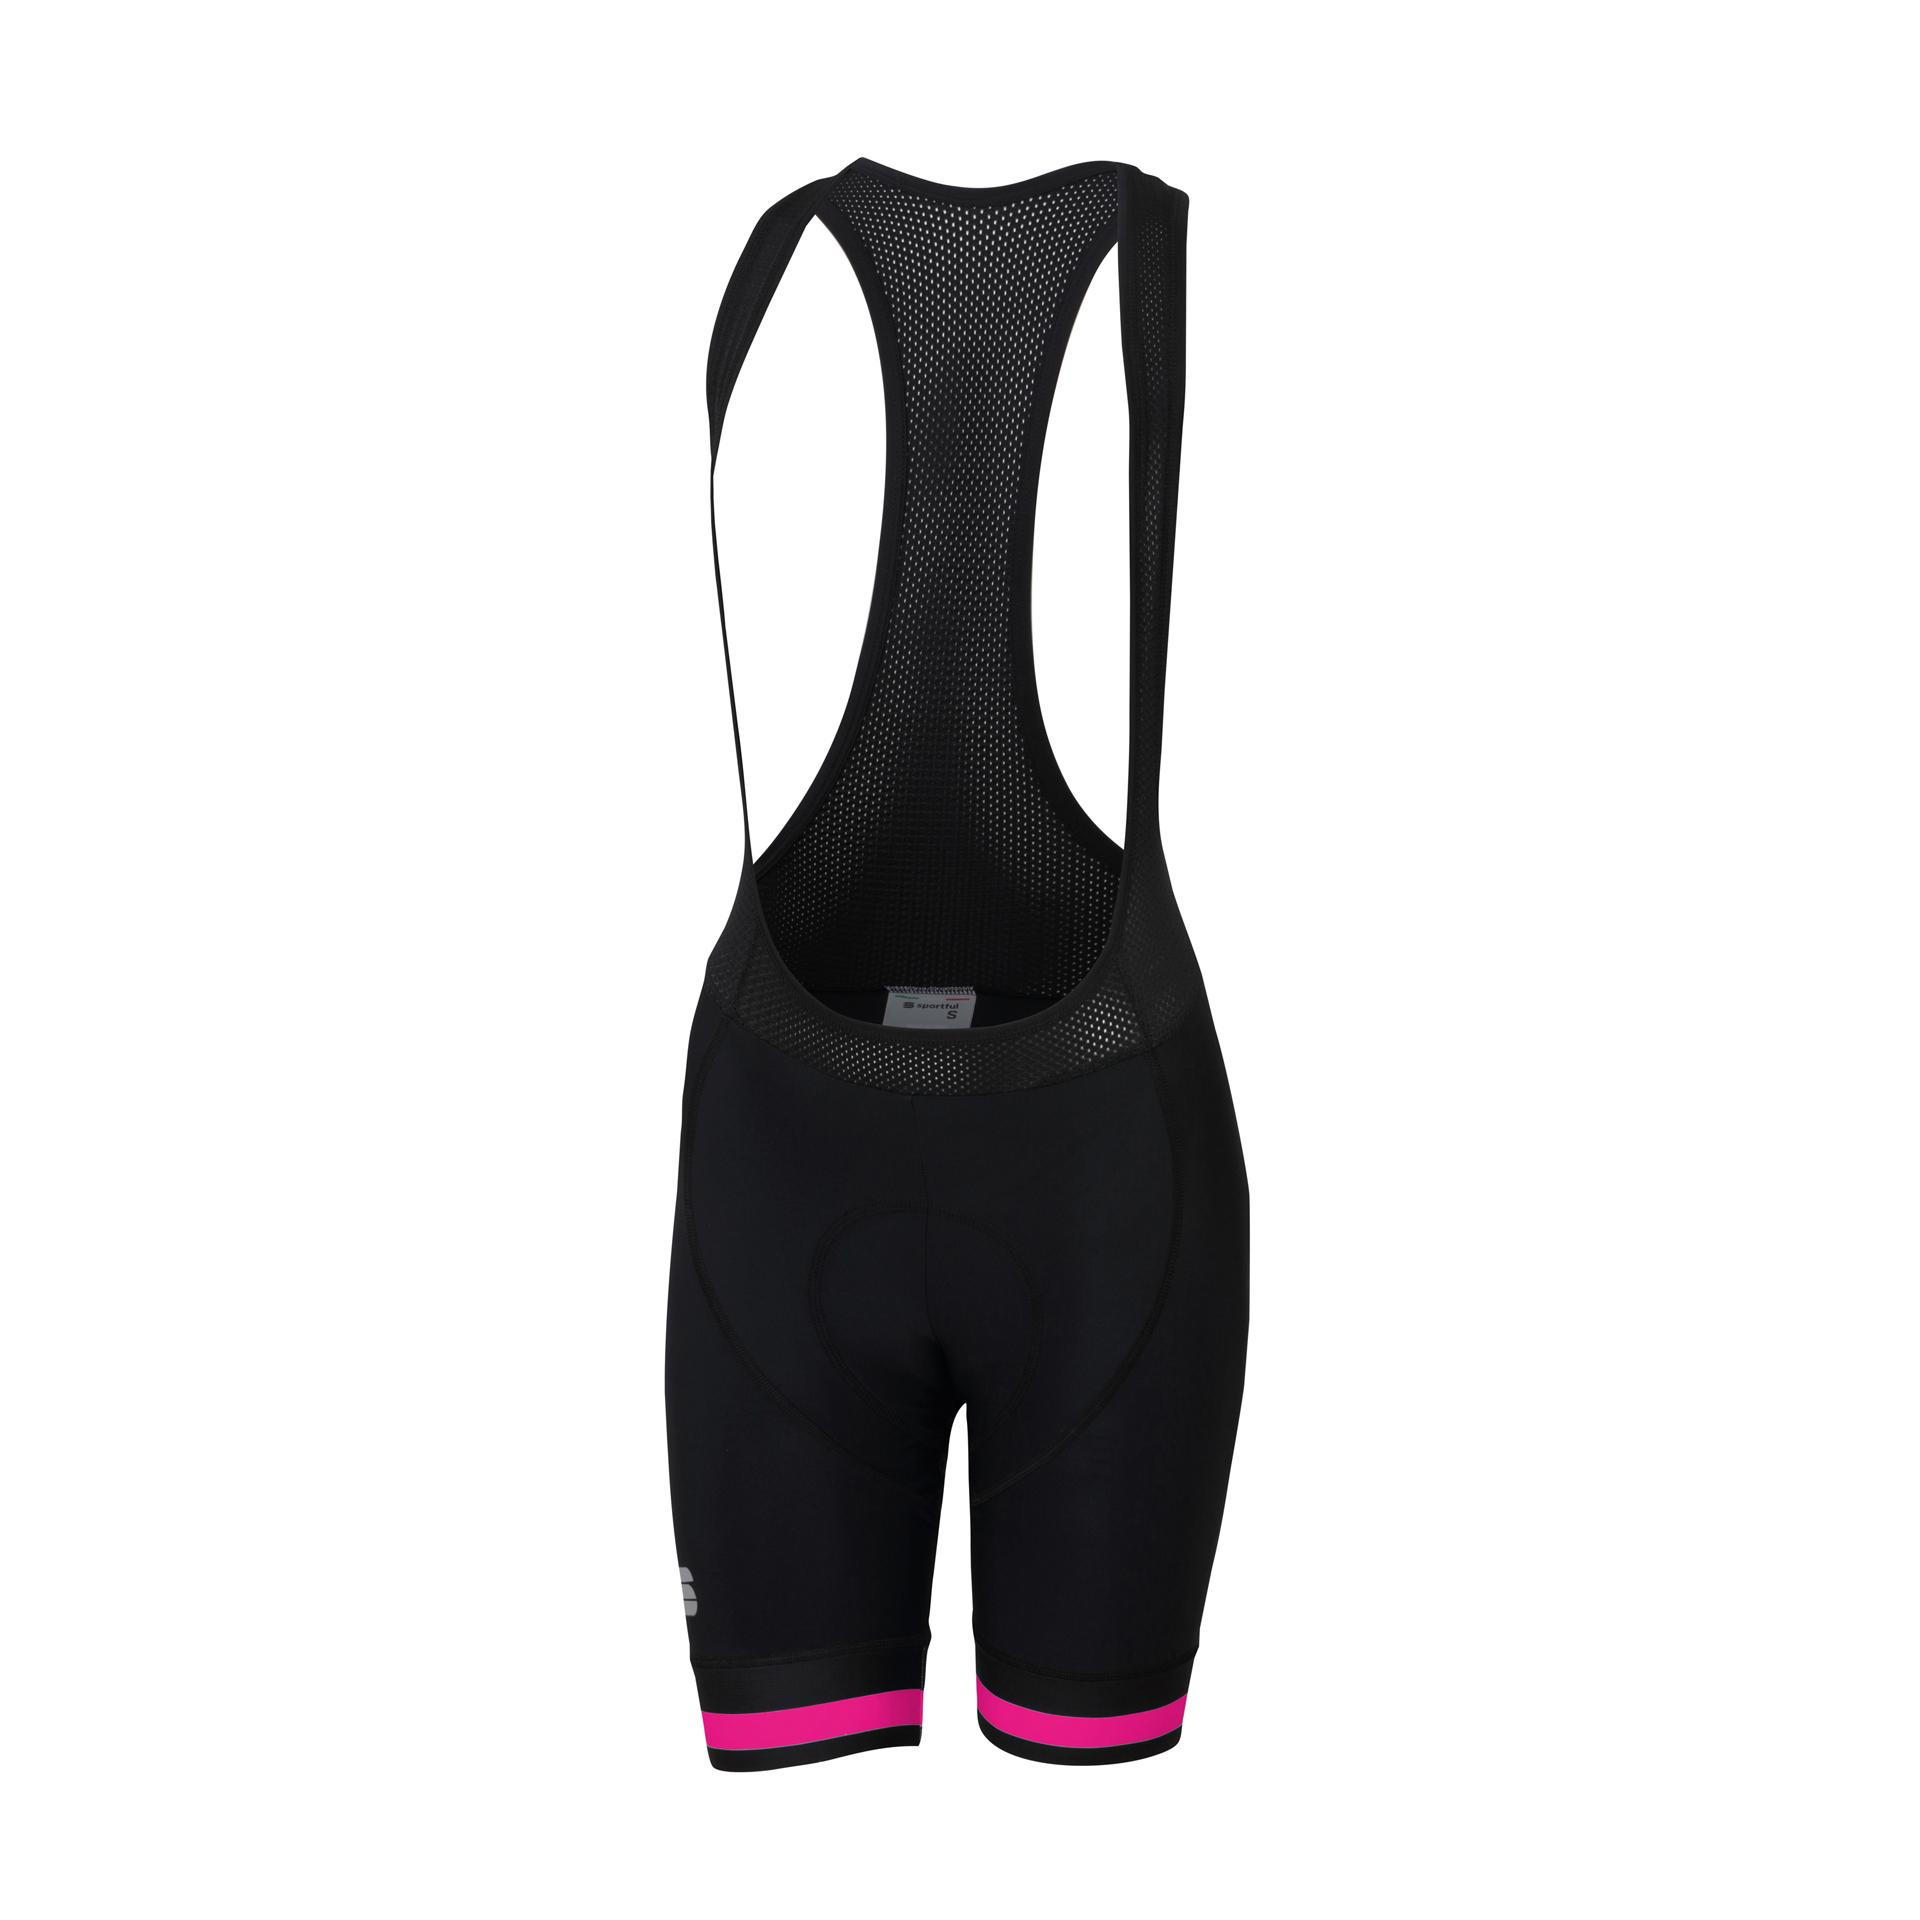 Sportful Fietsbroek met bretels - koersbroek Dames Zwart Roze / SF Bf Classic W Bibshort-Black/Bubble Gum